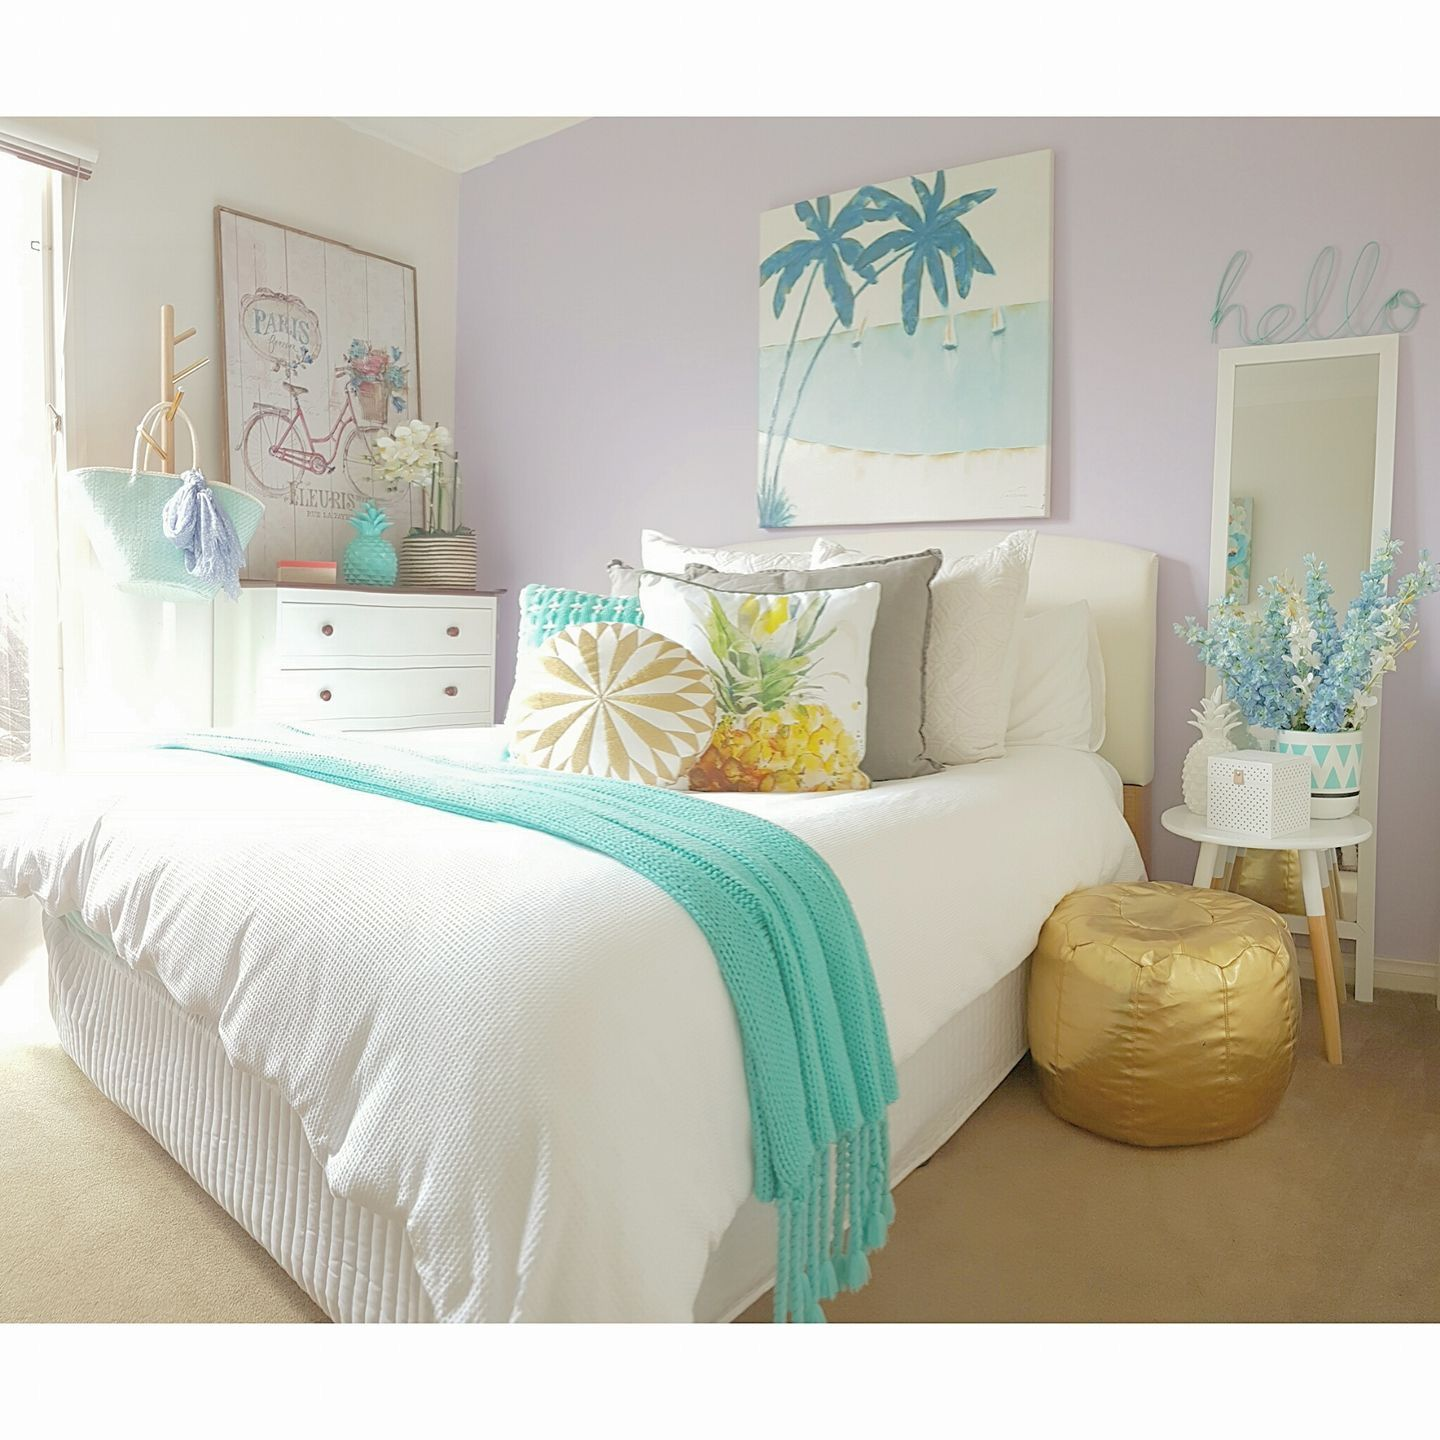 Kmart Teen Girls Bedroom Featuring Kmart White Waffle Quilt Cover